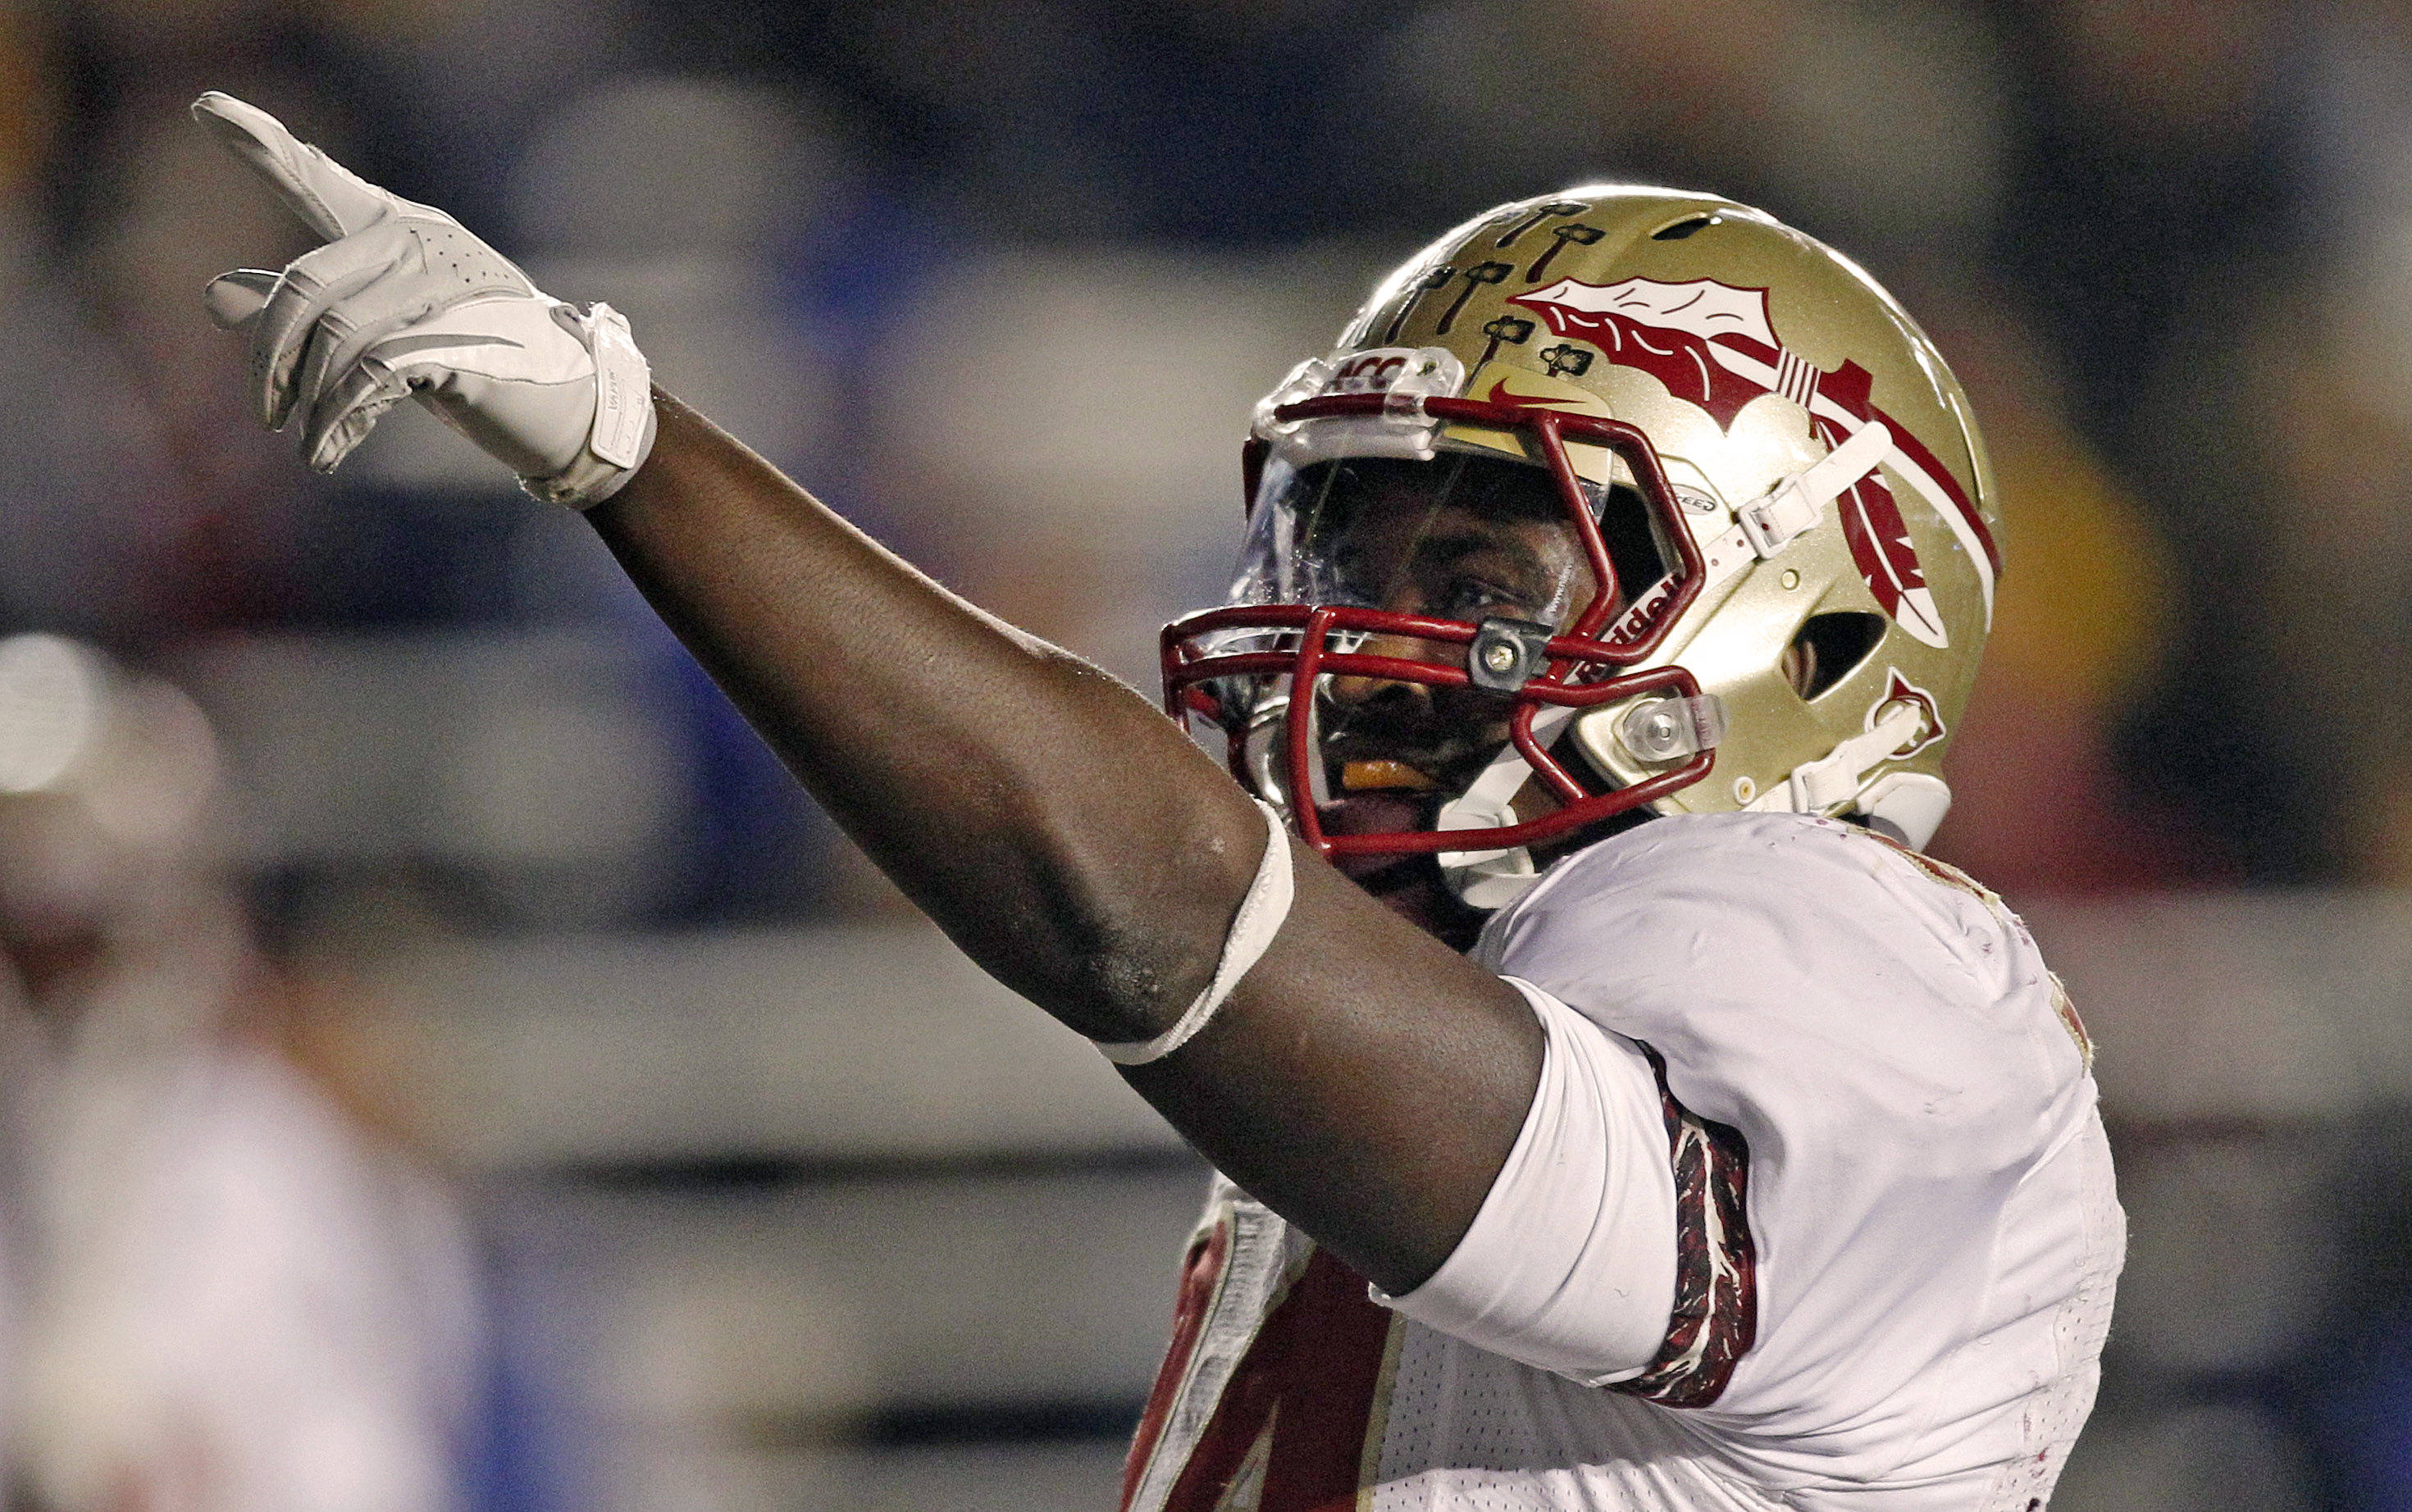 Florida State running back Lonnie Pryor points to fans after scoring against Boston College during the second half. (AP Photo/Charles Krupa)